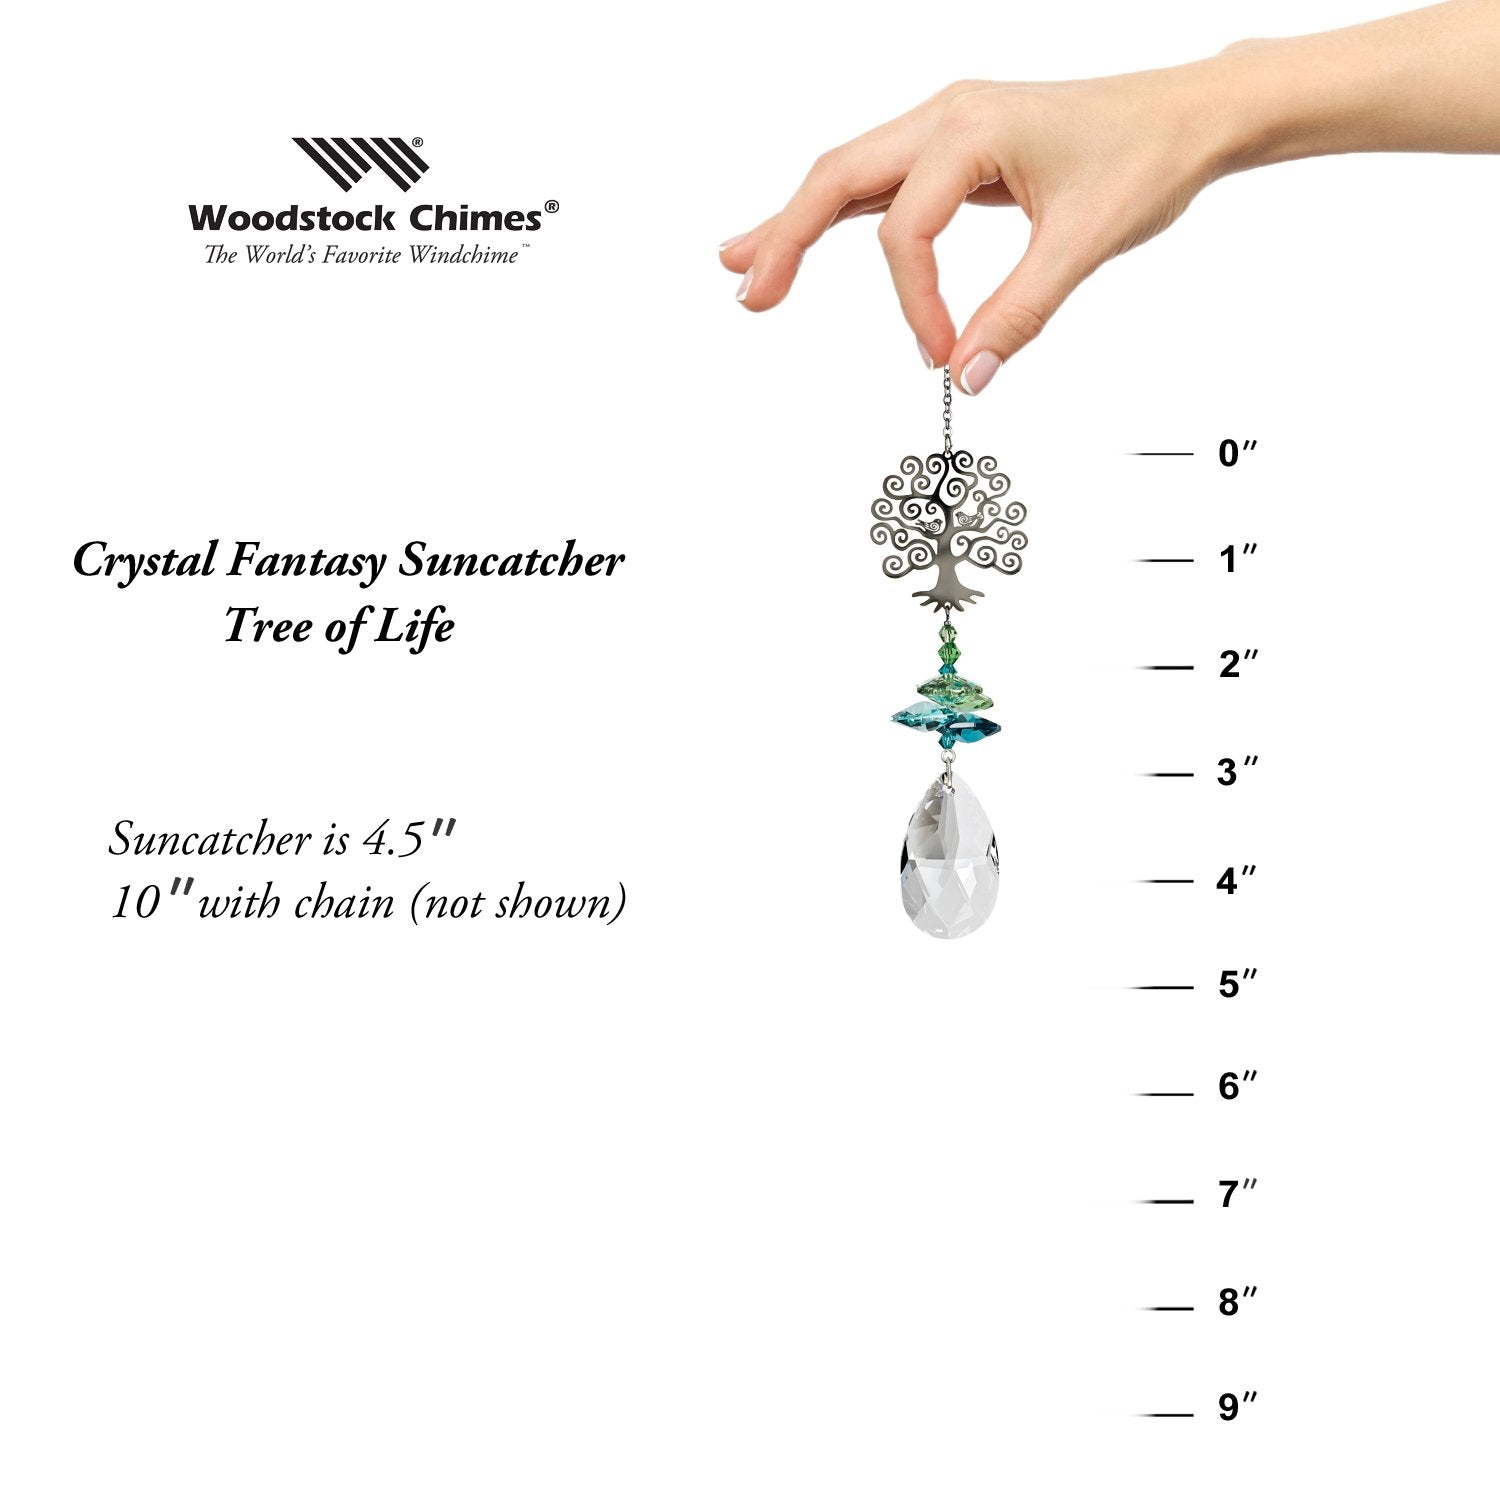 Crystal Fantasy Suncatcher - Tree of Life proportion image